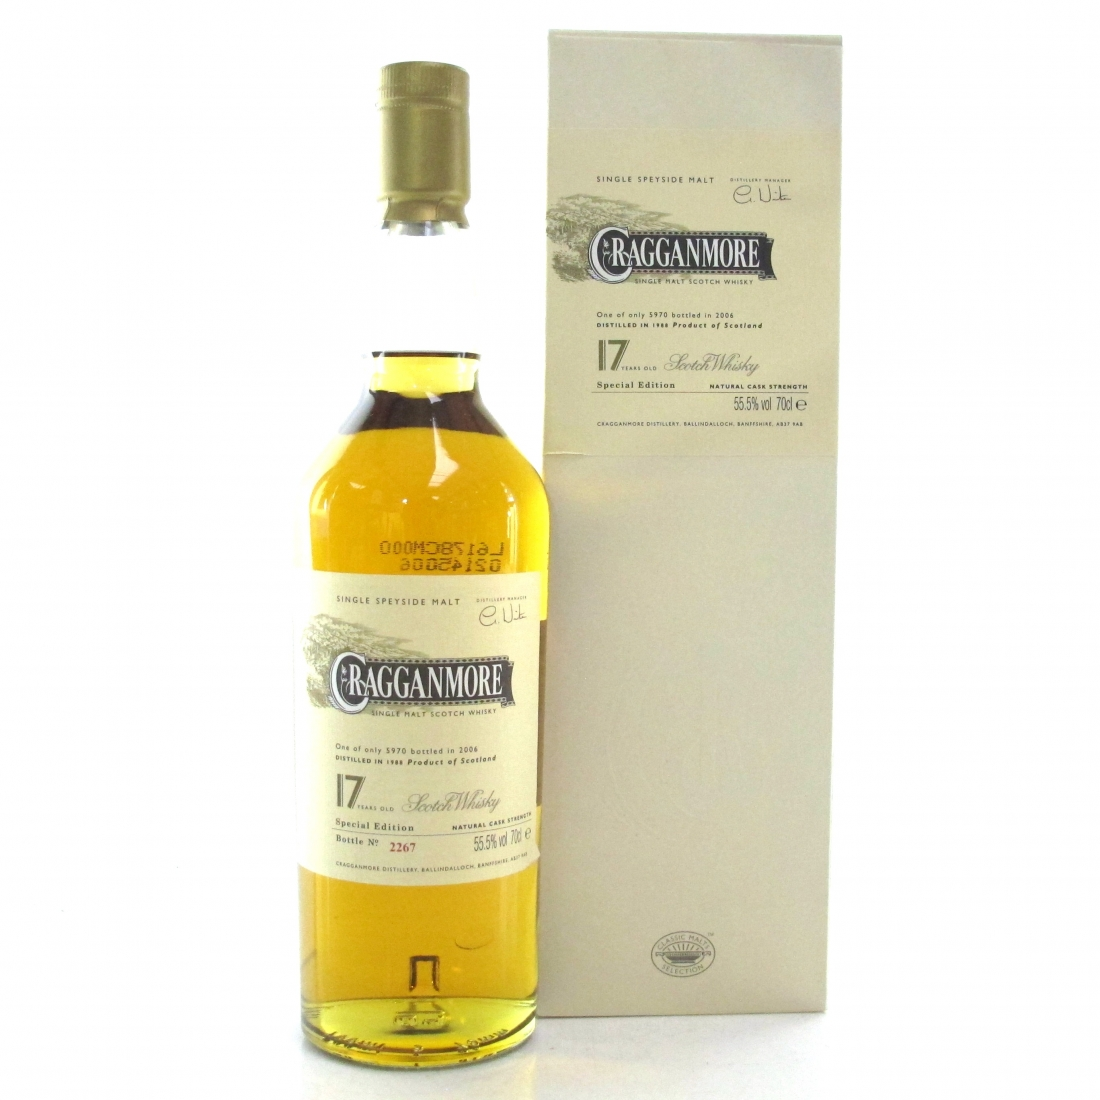 Cragganmore 1988 Cask Strength 17 Year Old